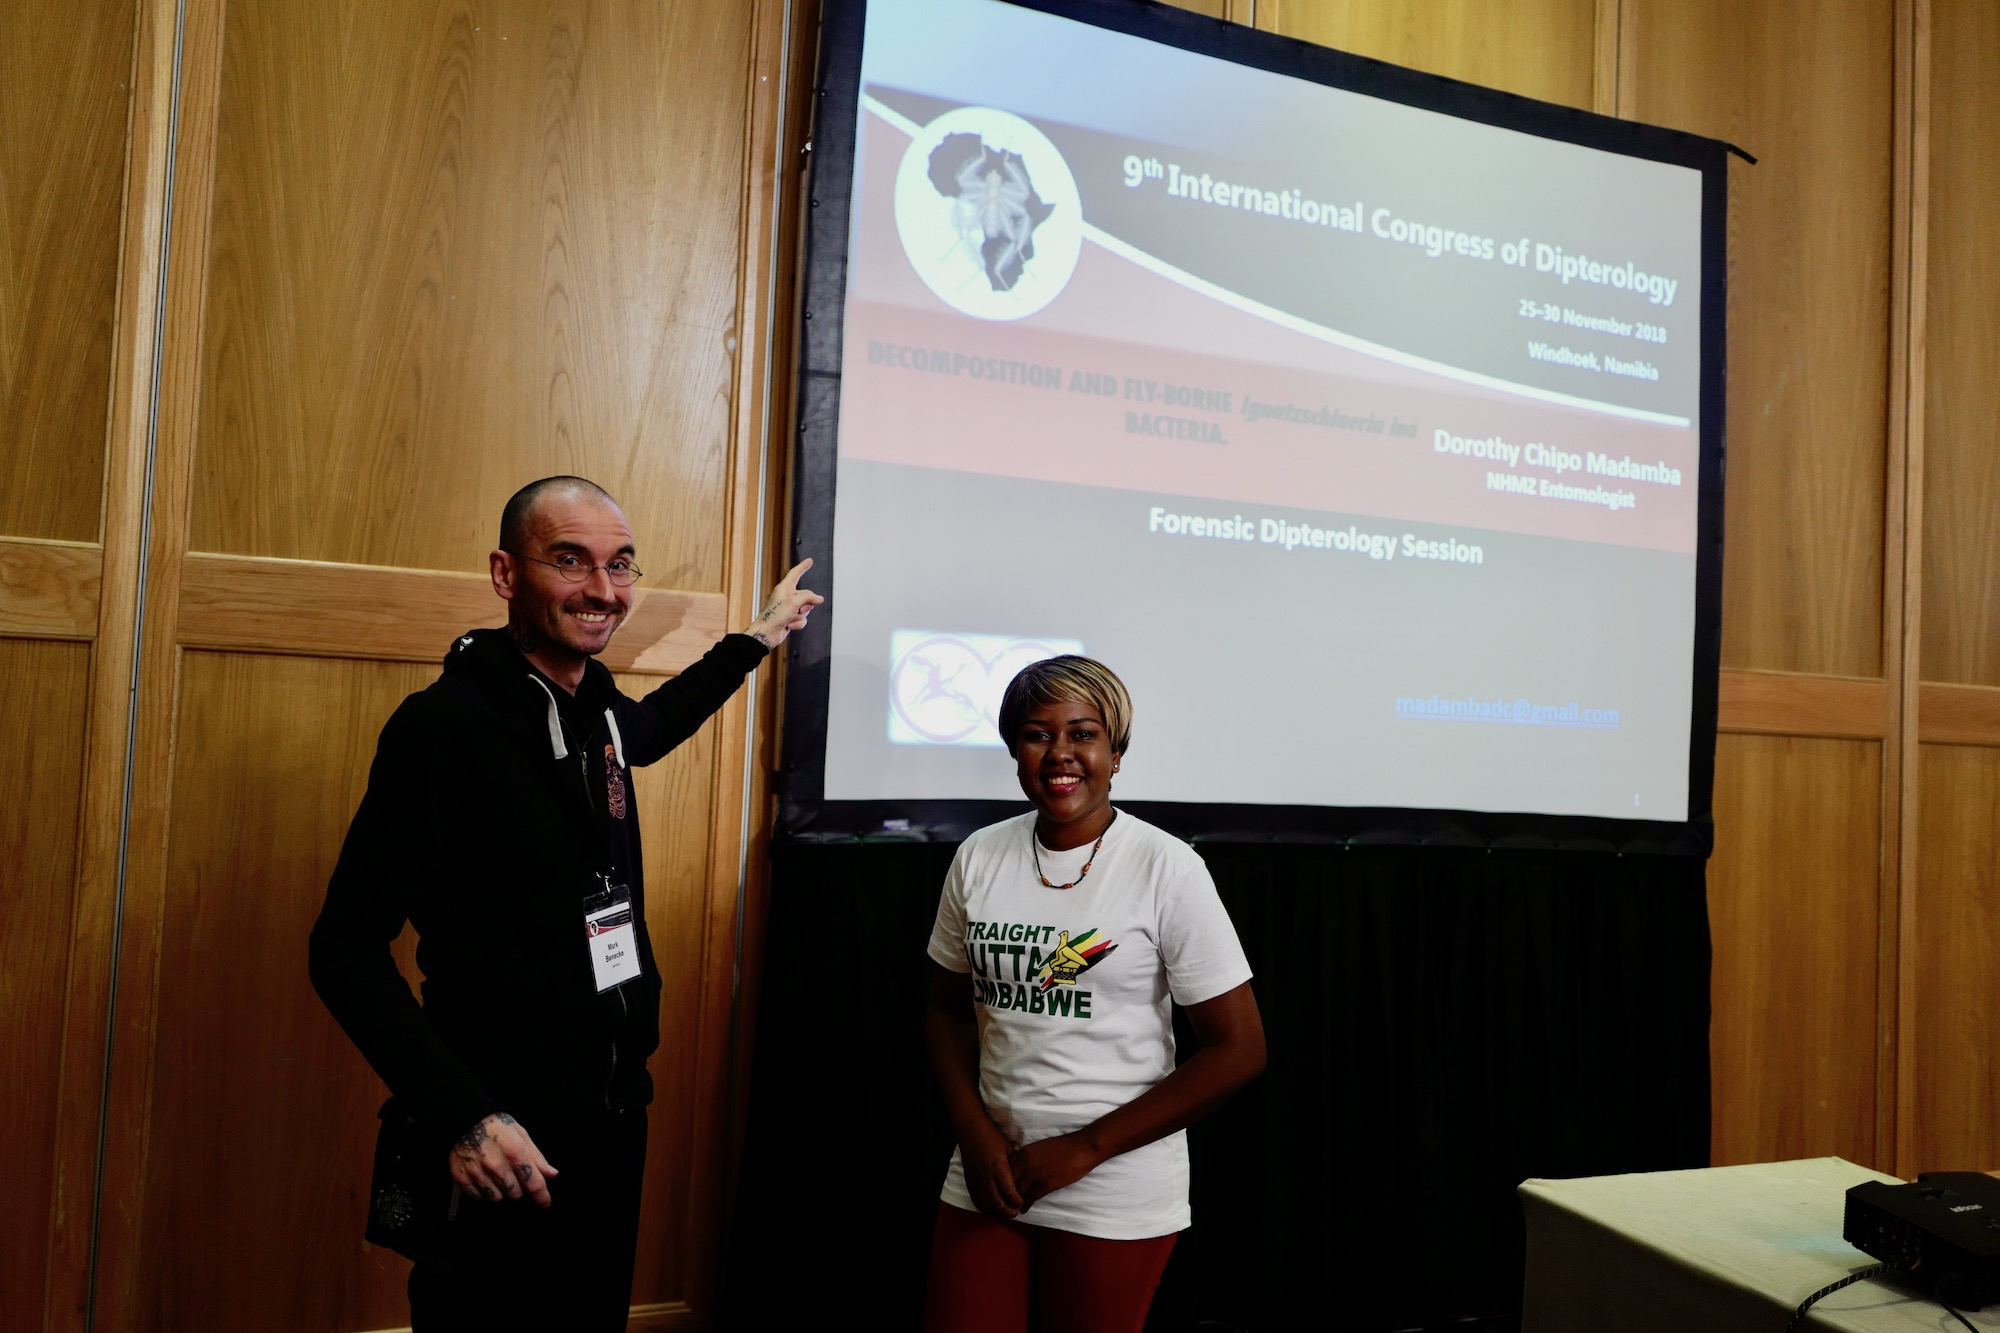 mark_benecke_ICD9_dipterology_world_congress_windhoeck_namibia - 61.jpg